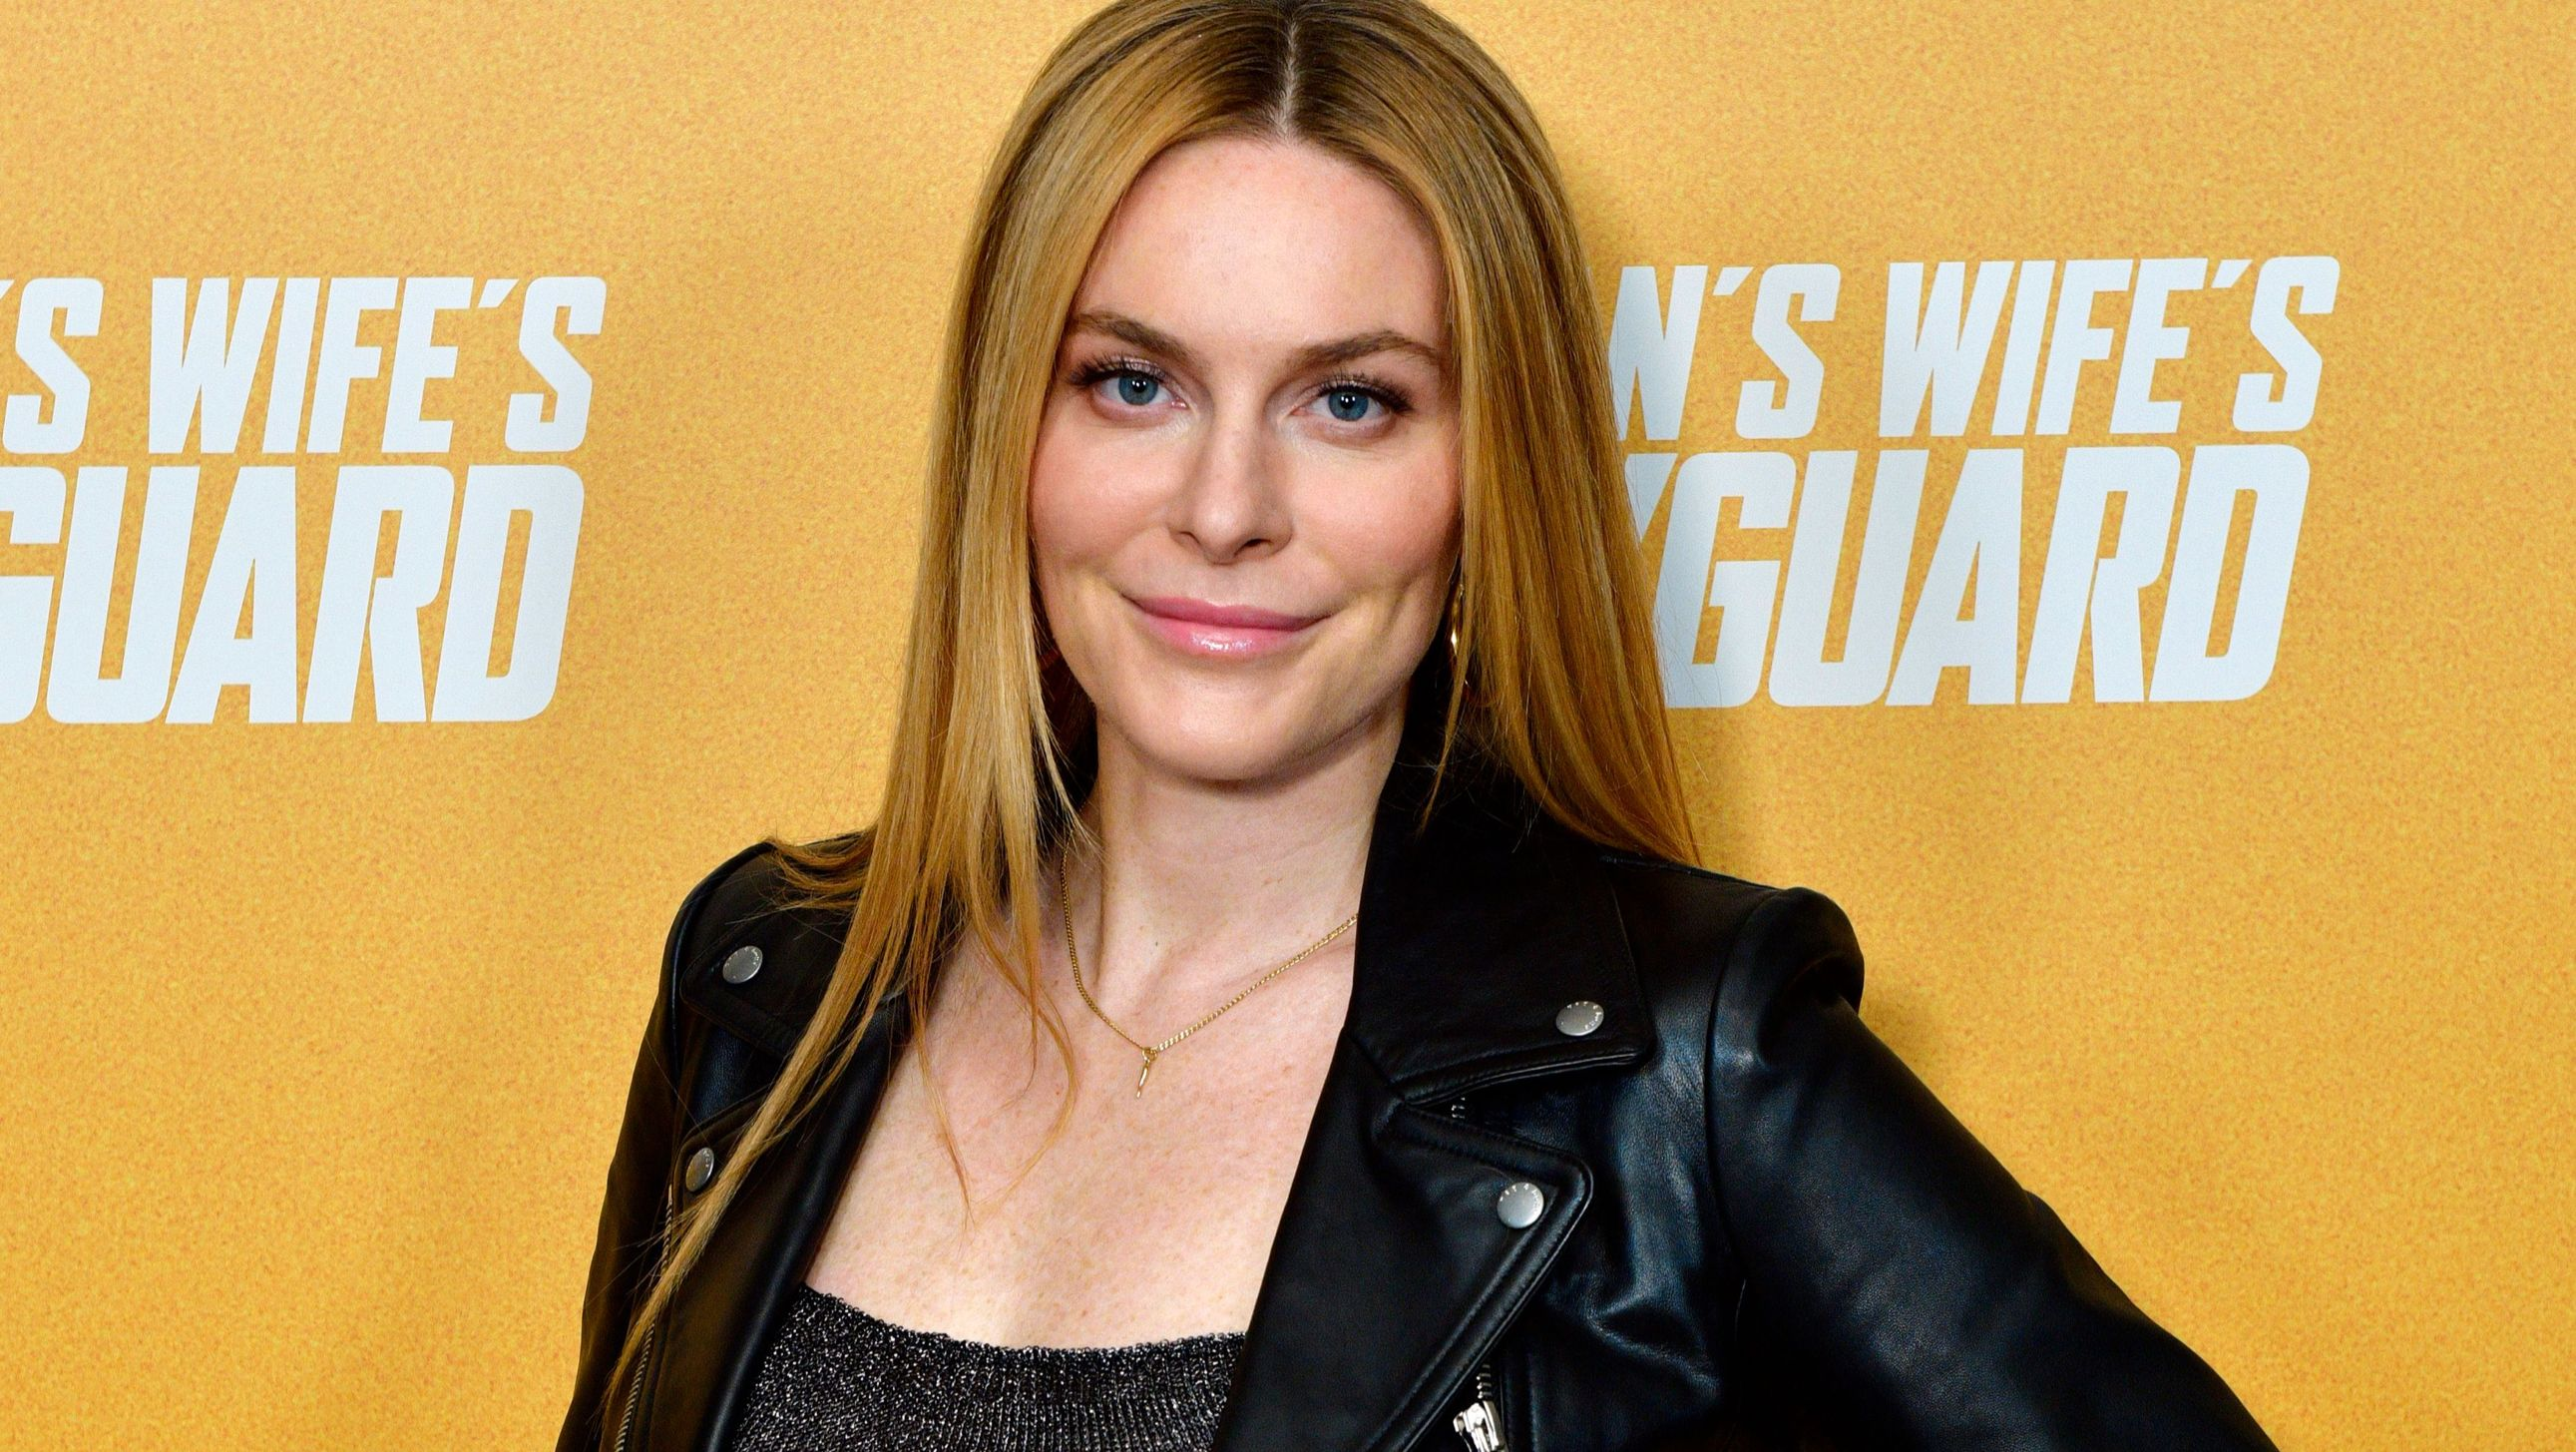 Leah McSweeney wears her hair down with a leather jacket.